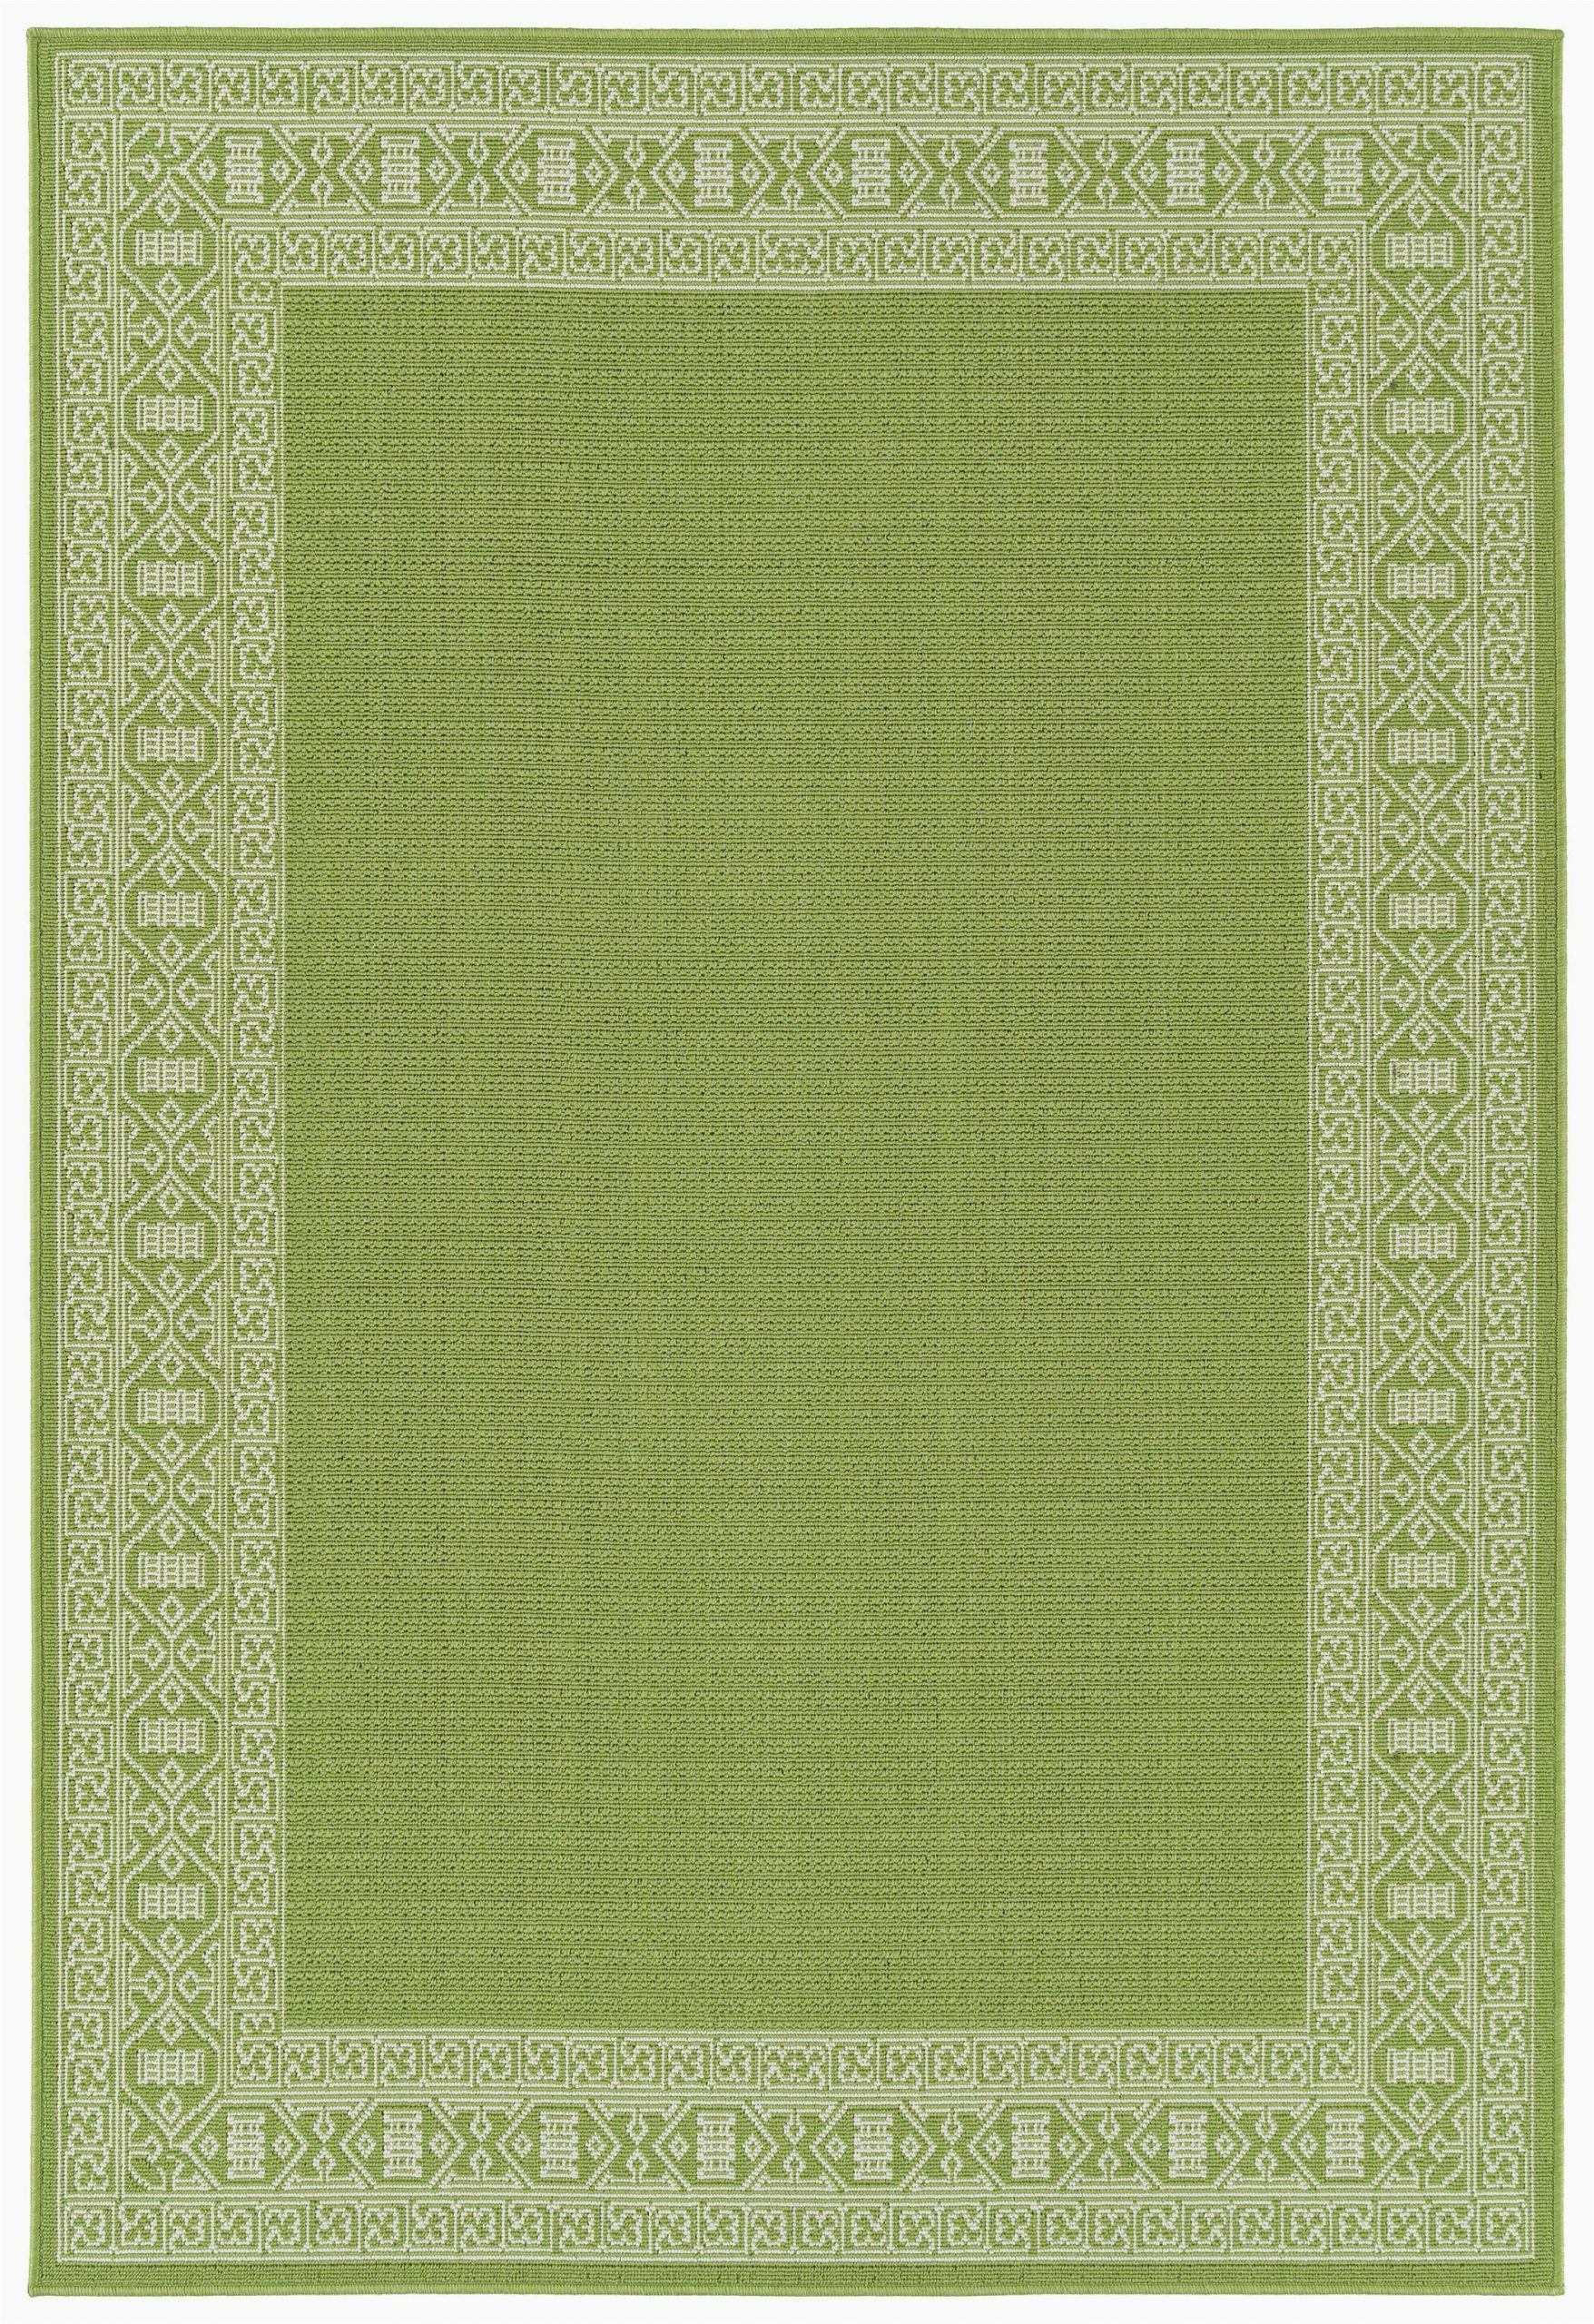 poteet lime green indooroutdoor area rug